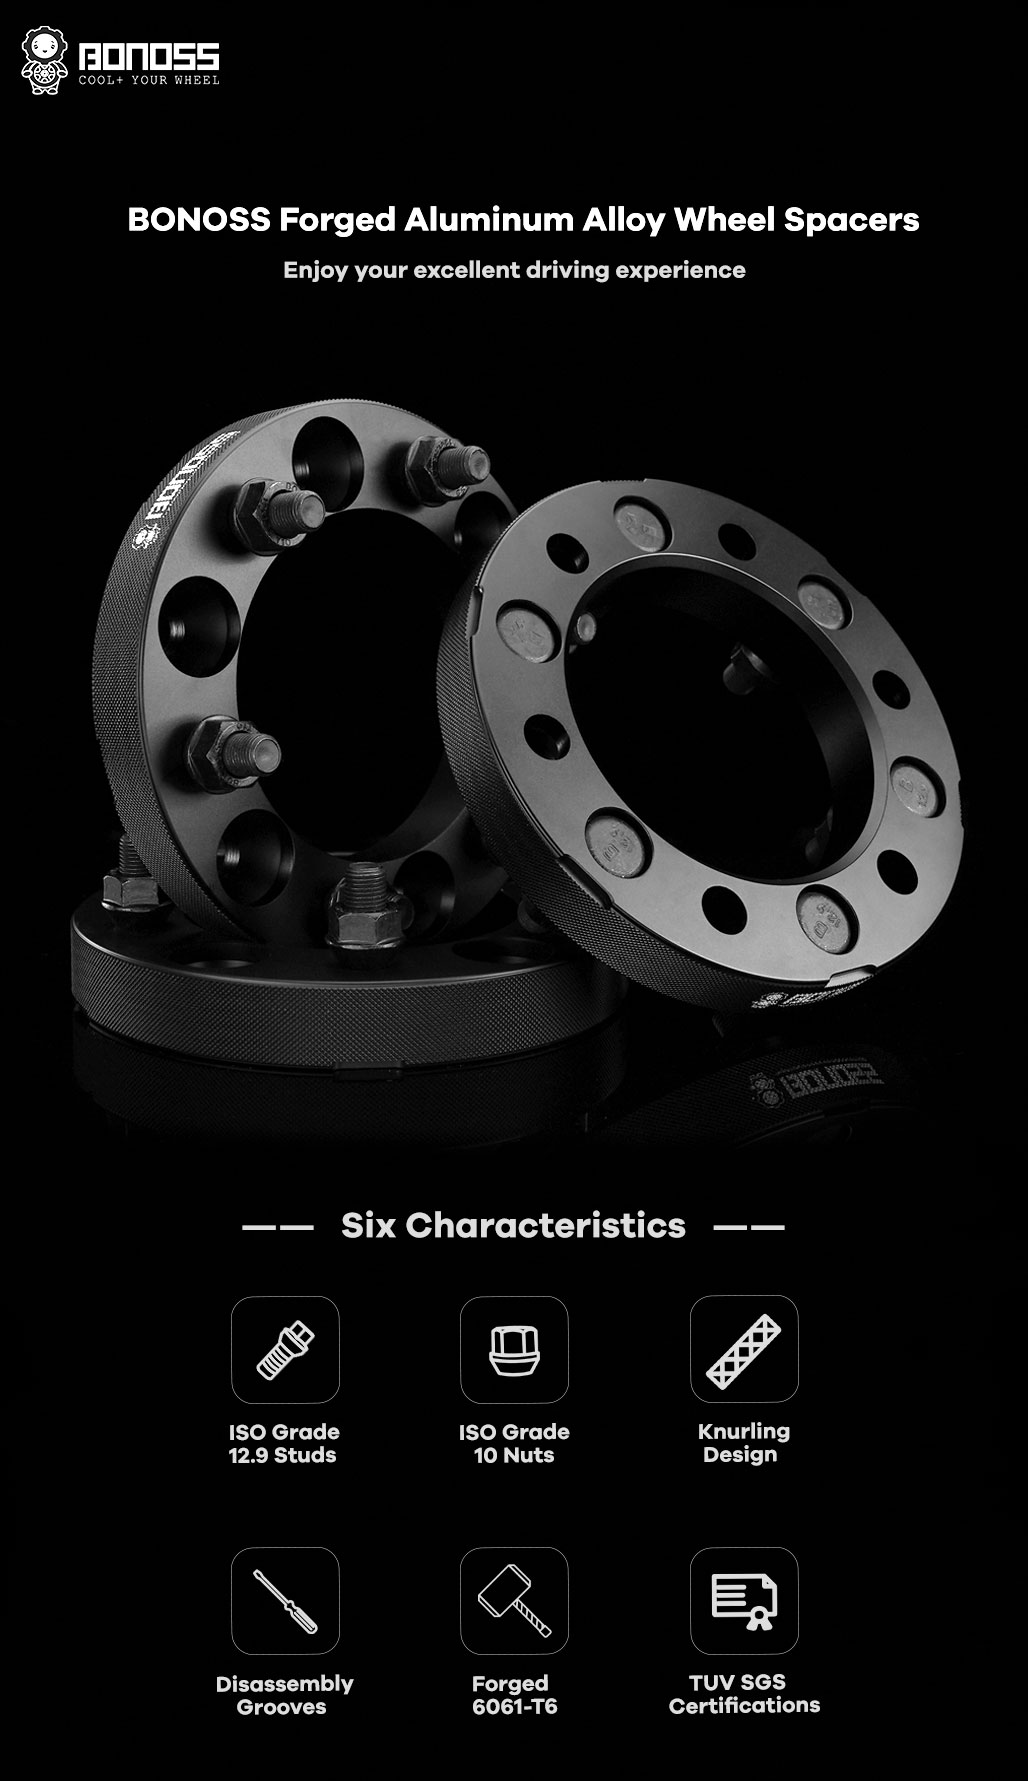 BONOSS-forged-active-cooling-wheel-spacer-for-nissan-Patrol-Y61-6x139.7-110-12x1.25-6061t6-by-grace-1